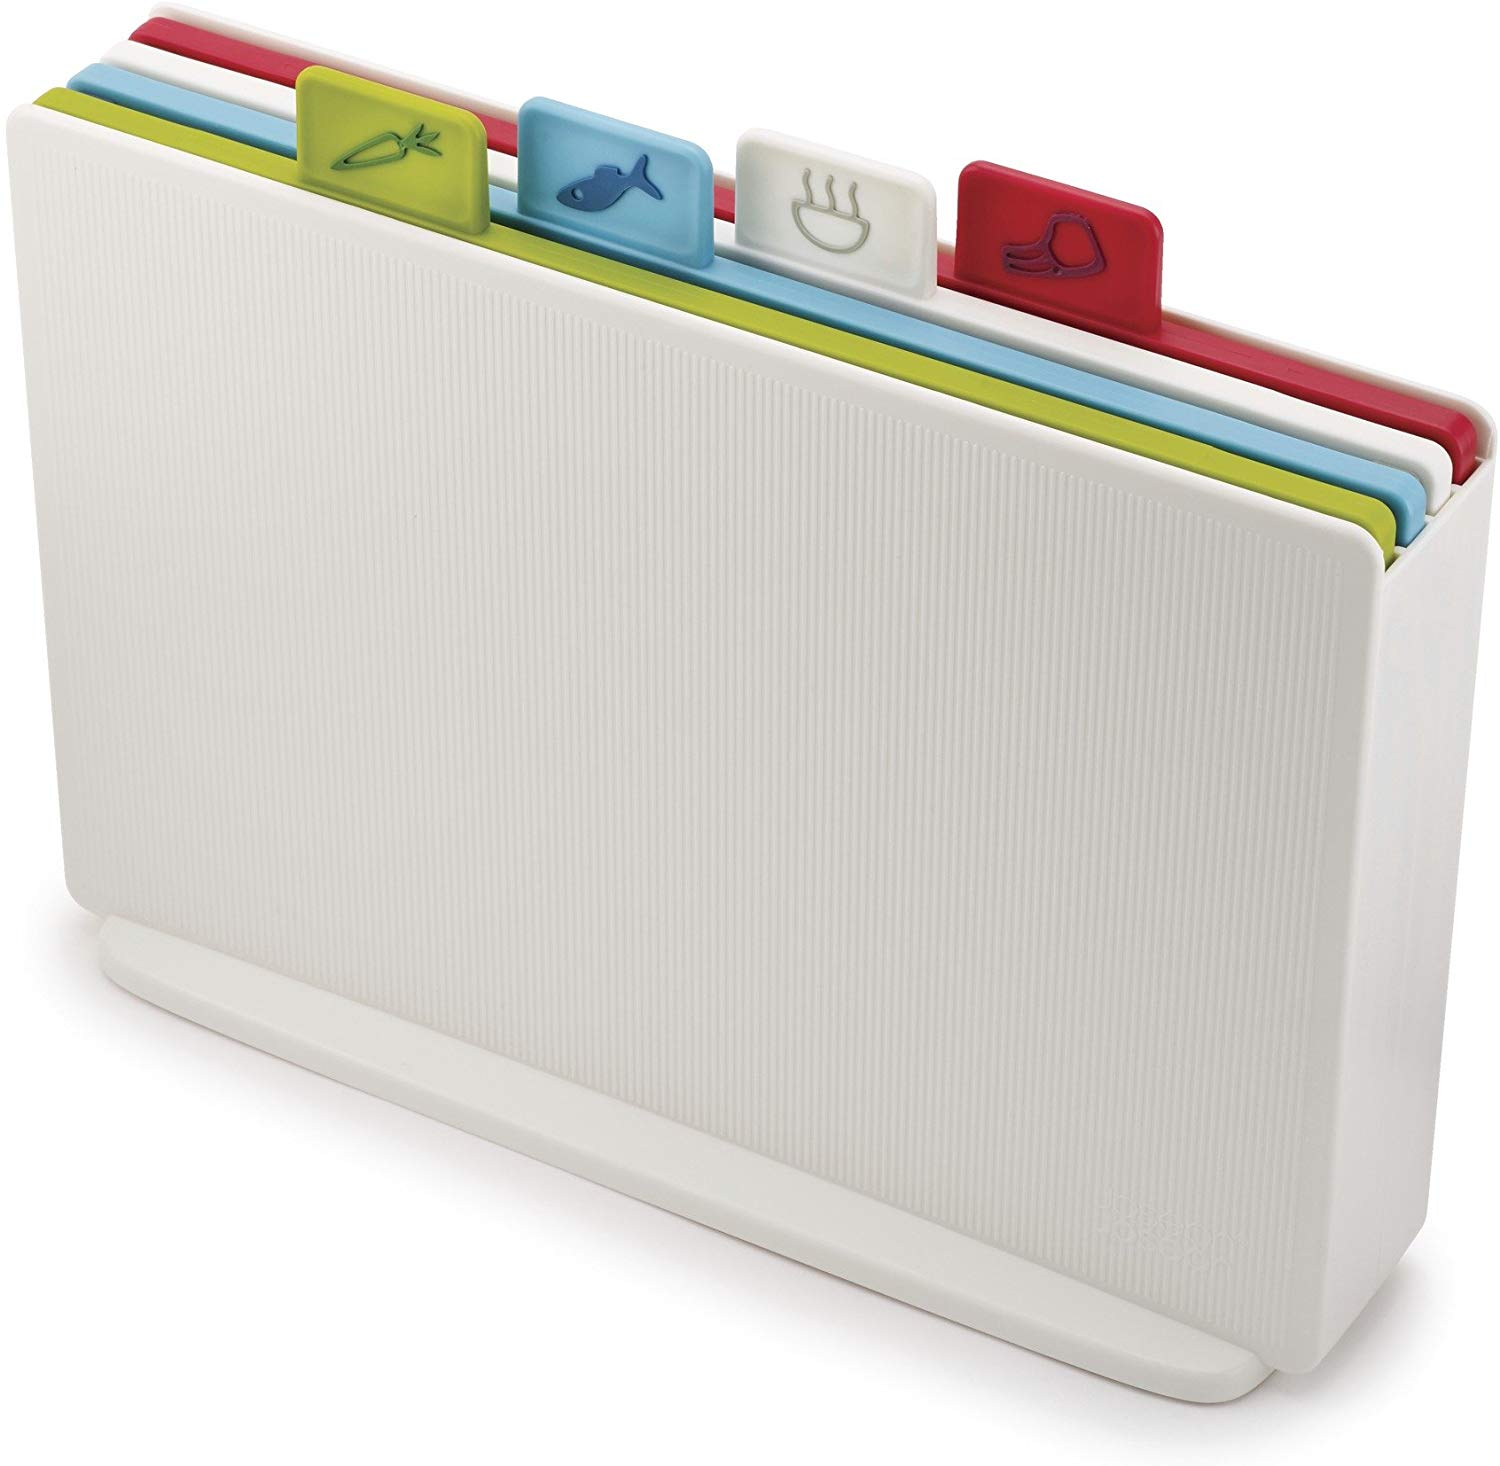 36% off Joseph Joseph Index Chopping Board Set – White, Set of 4